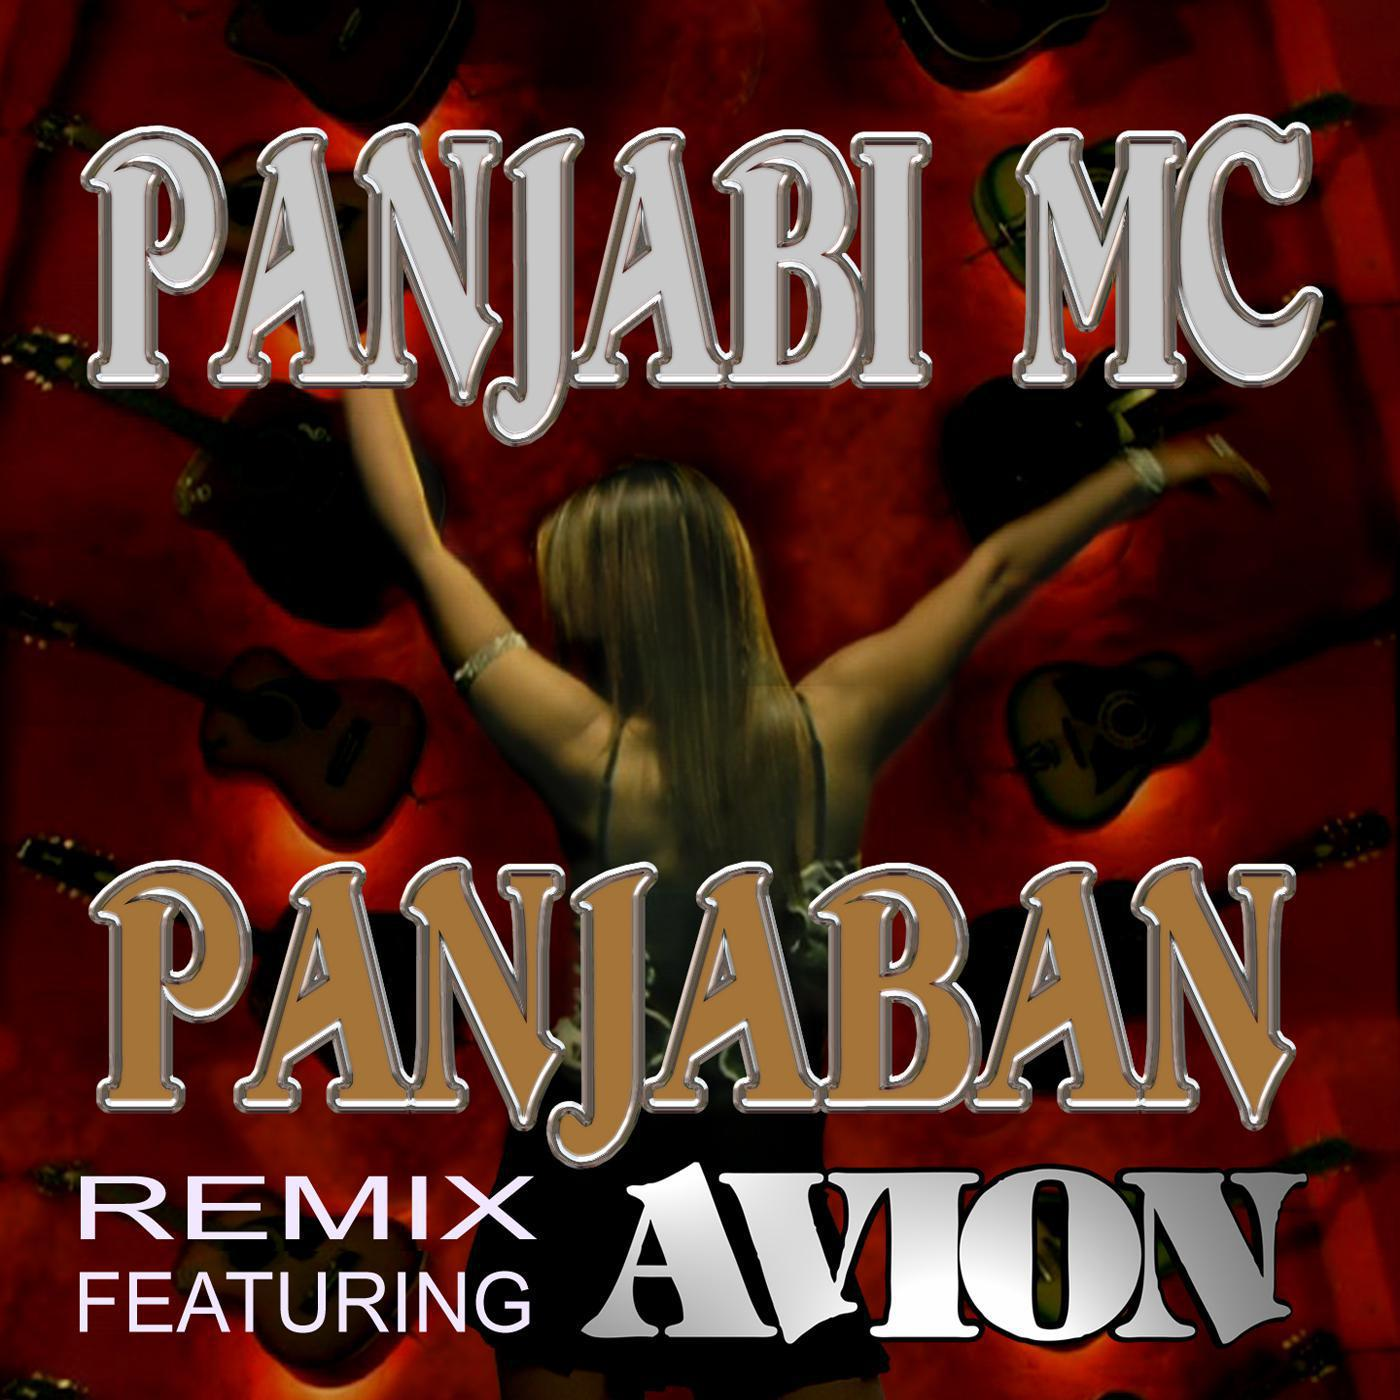 Panjaban (Remixes) [feat. Avion] [feat. Avion] - EP